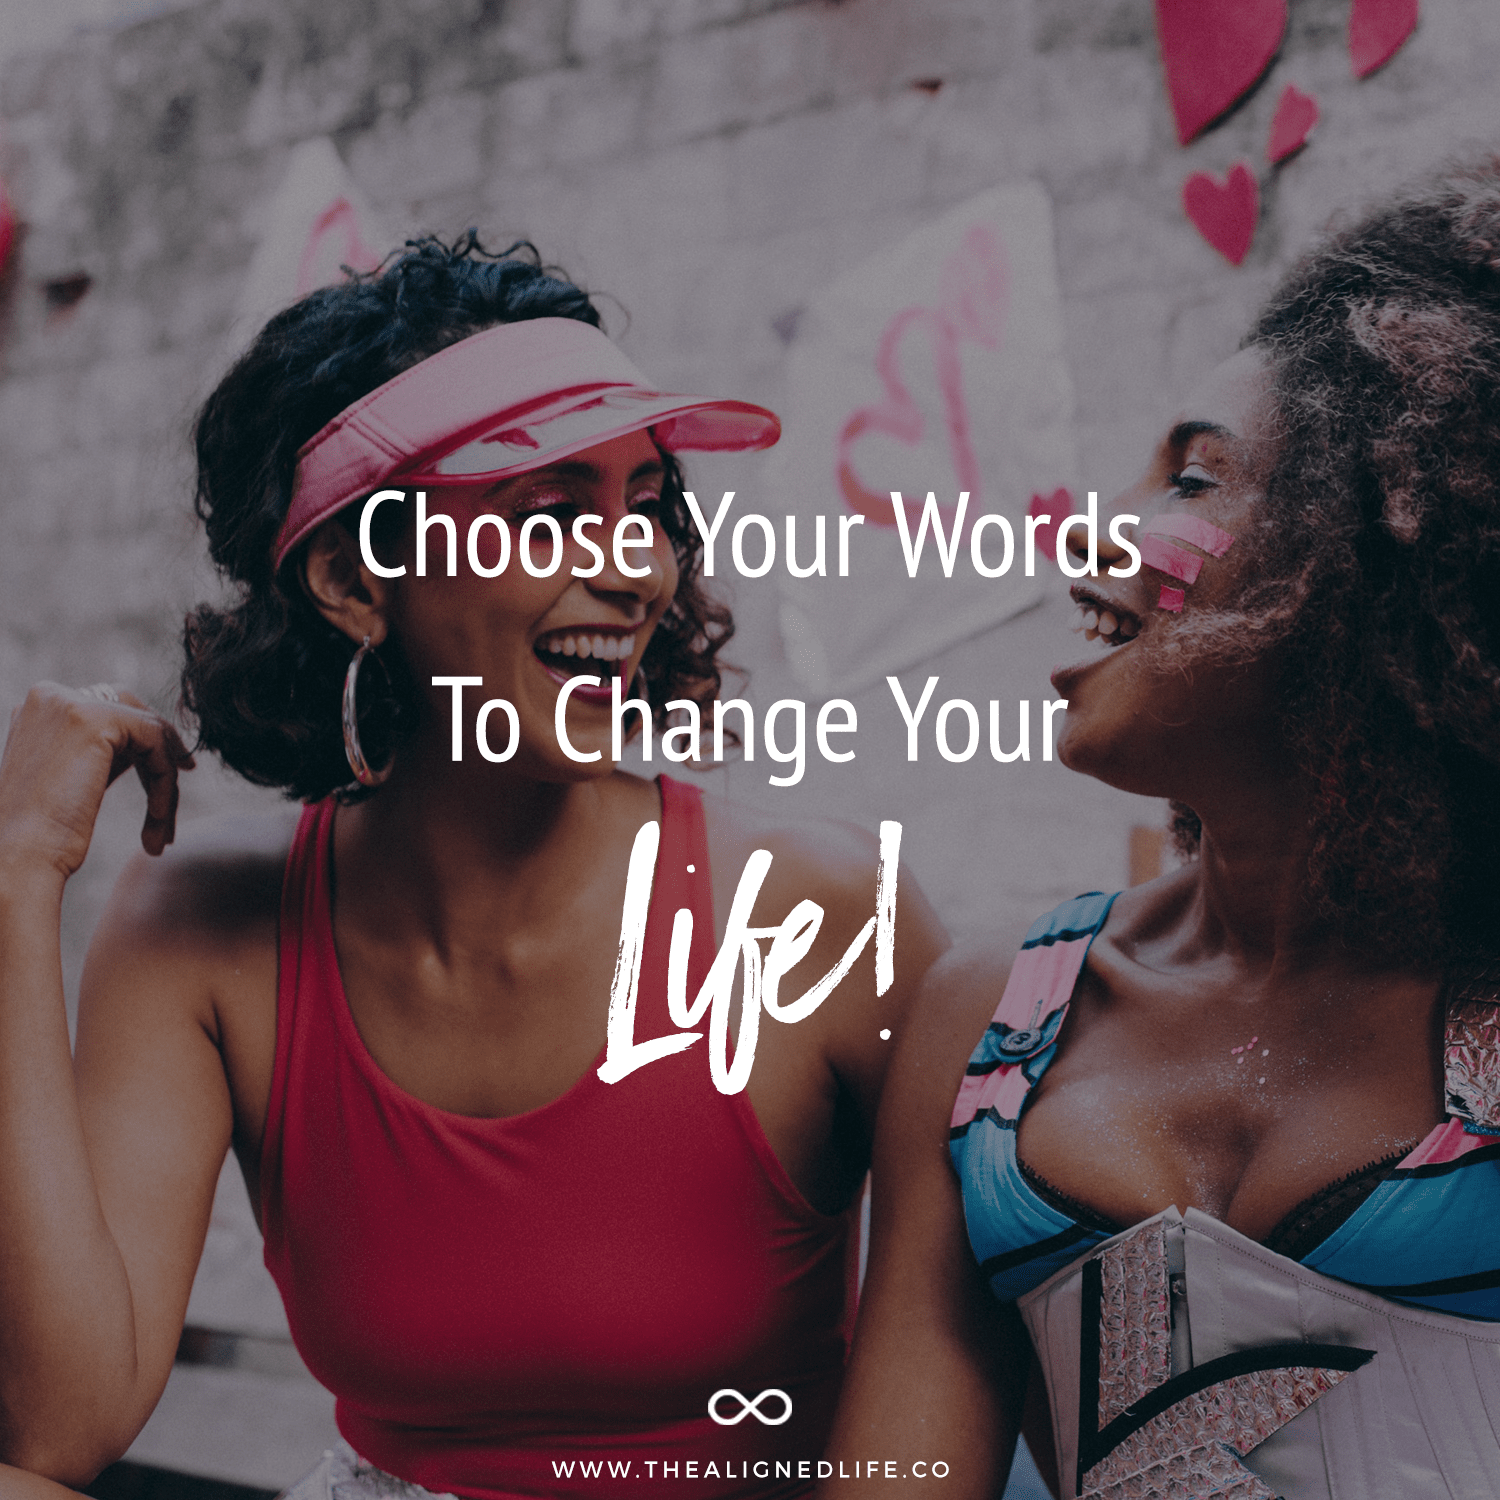 Choose Your Words To Change Your Life